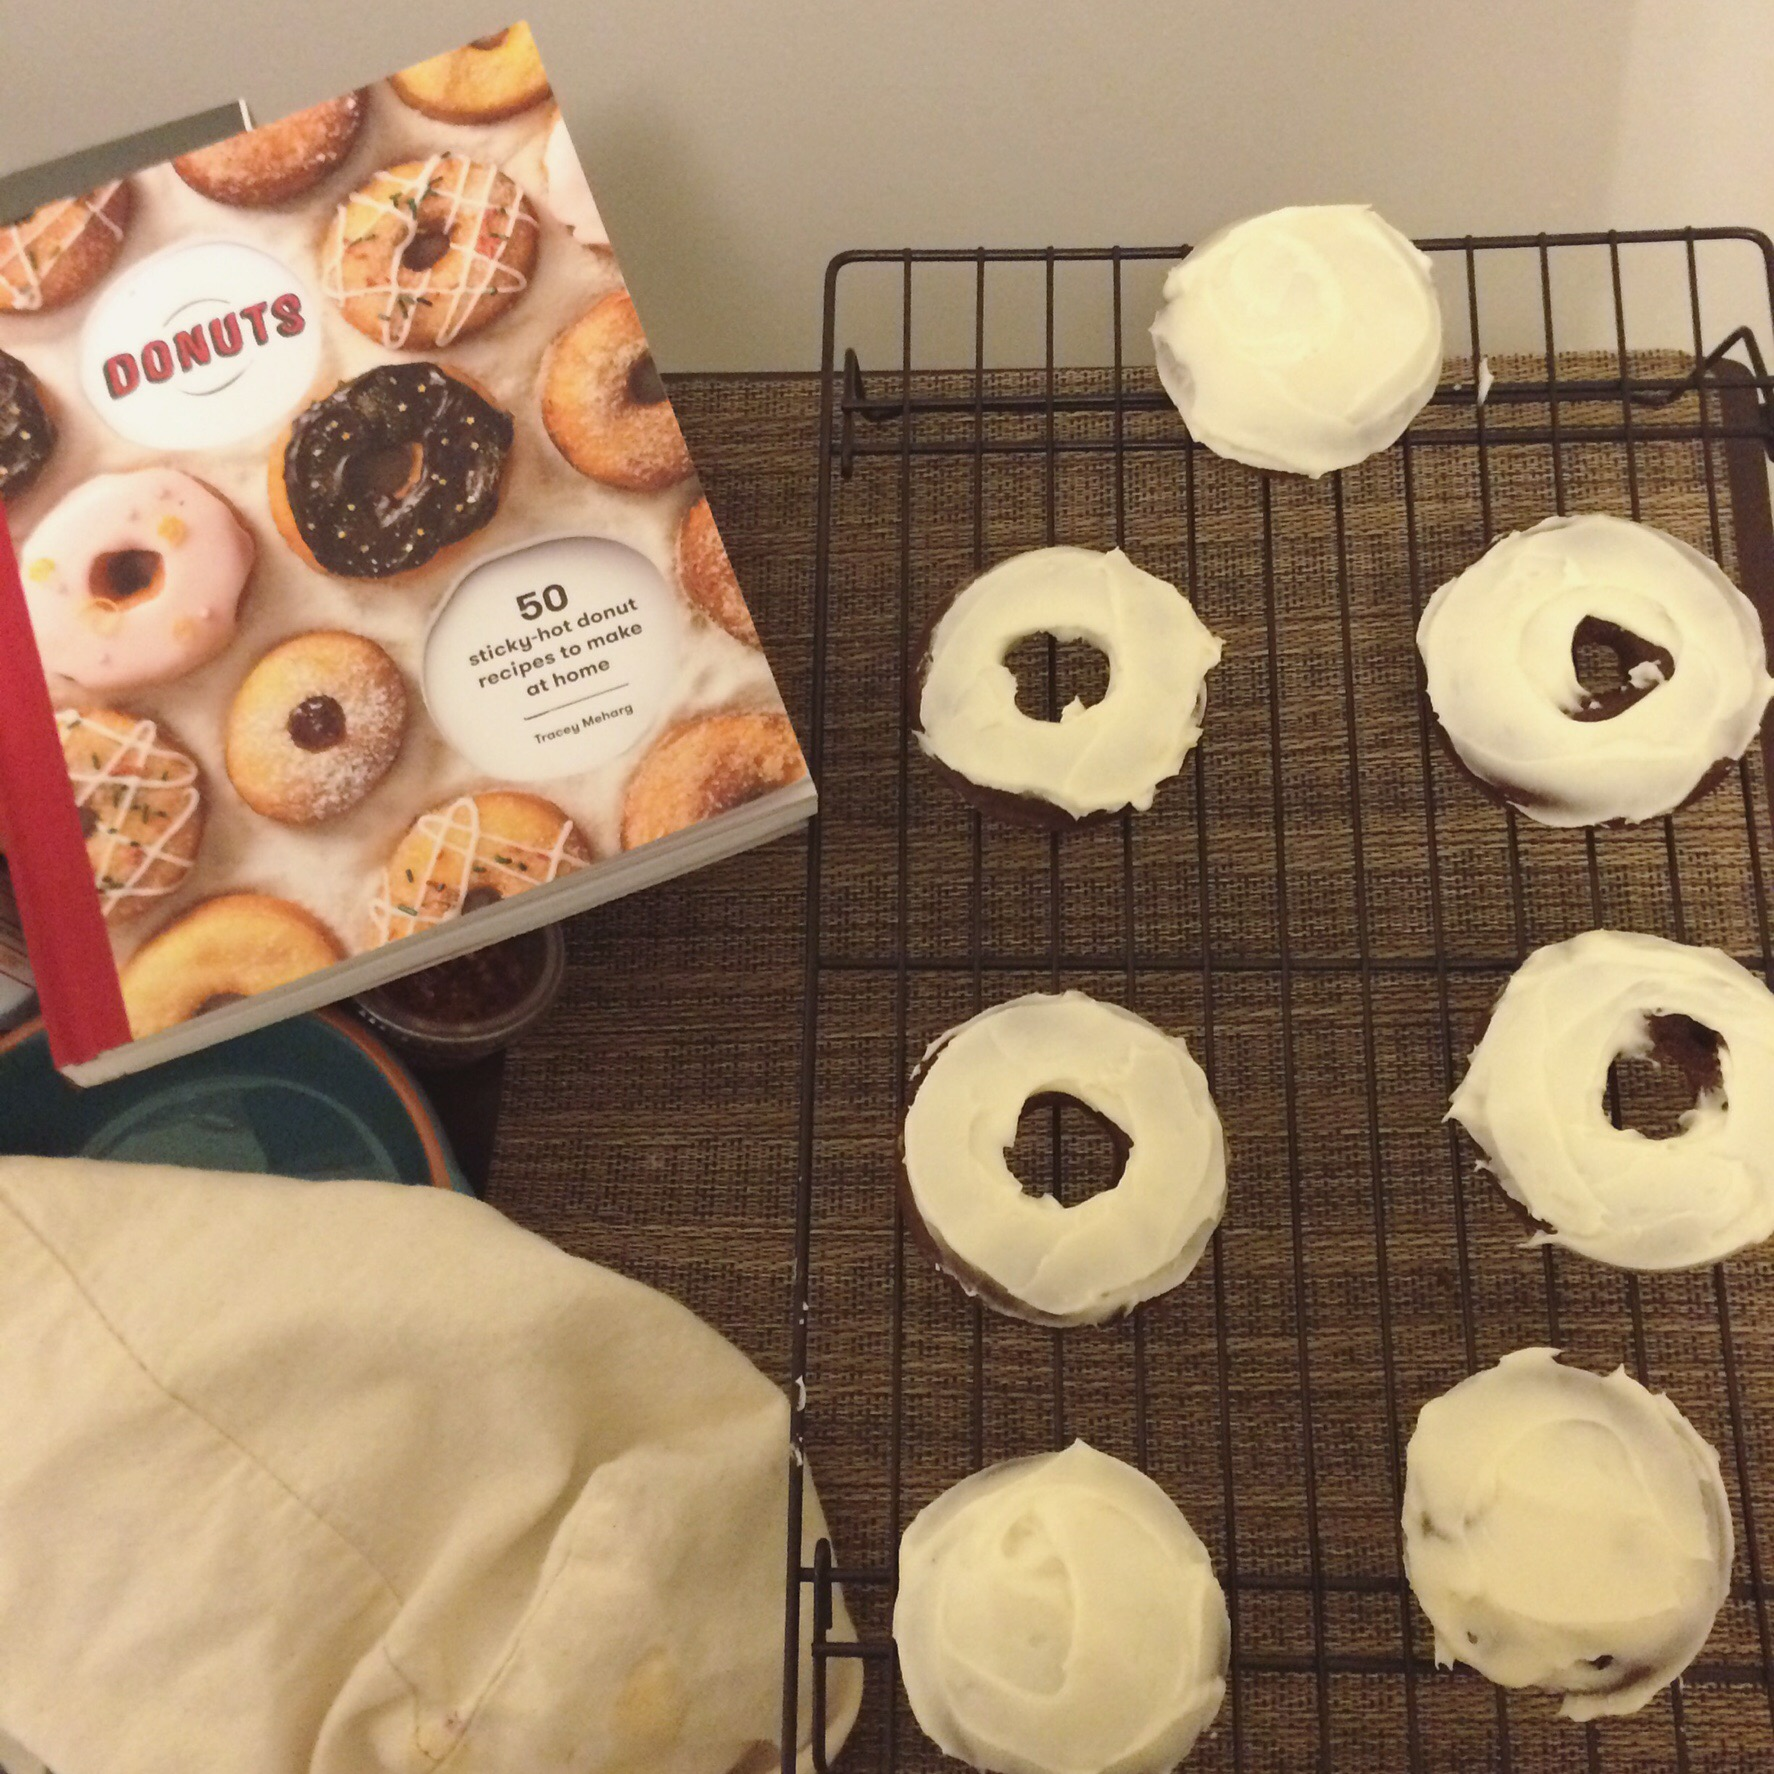 Devil's food cupcakes and doughnuts